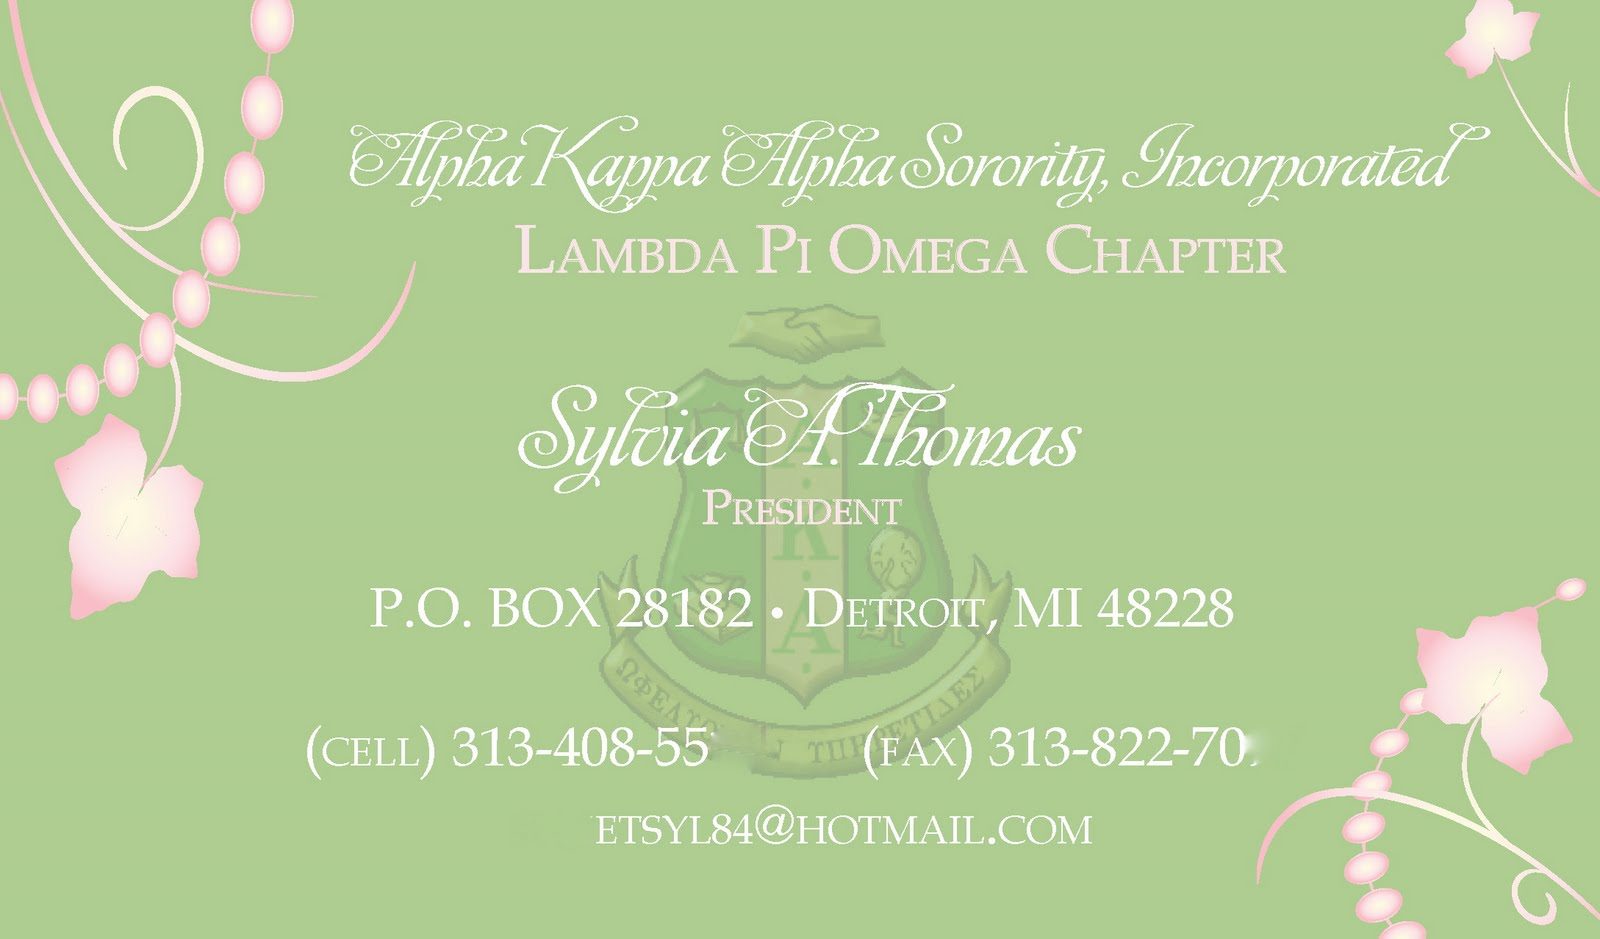 These Business Card Style Calling Cards Were Designed For A Member Of Alpha Ka Sorority Inc They Are Very Useful Networking And Much